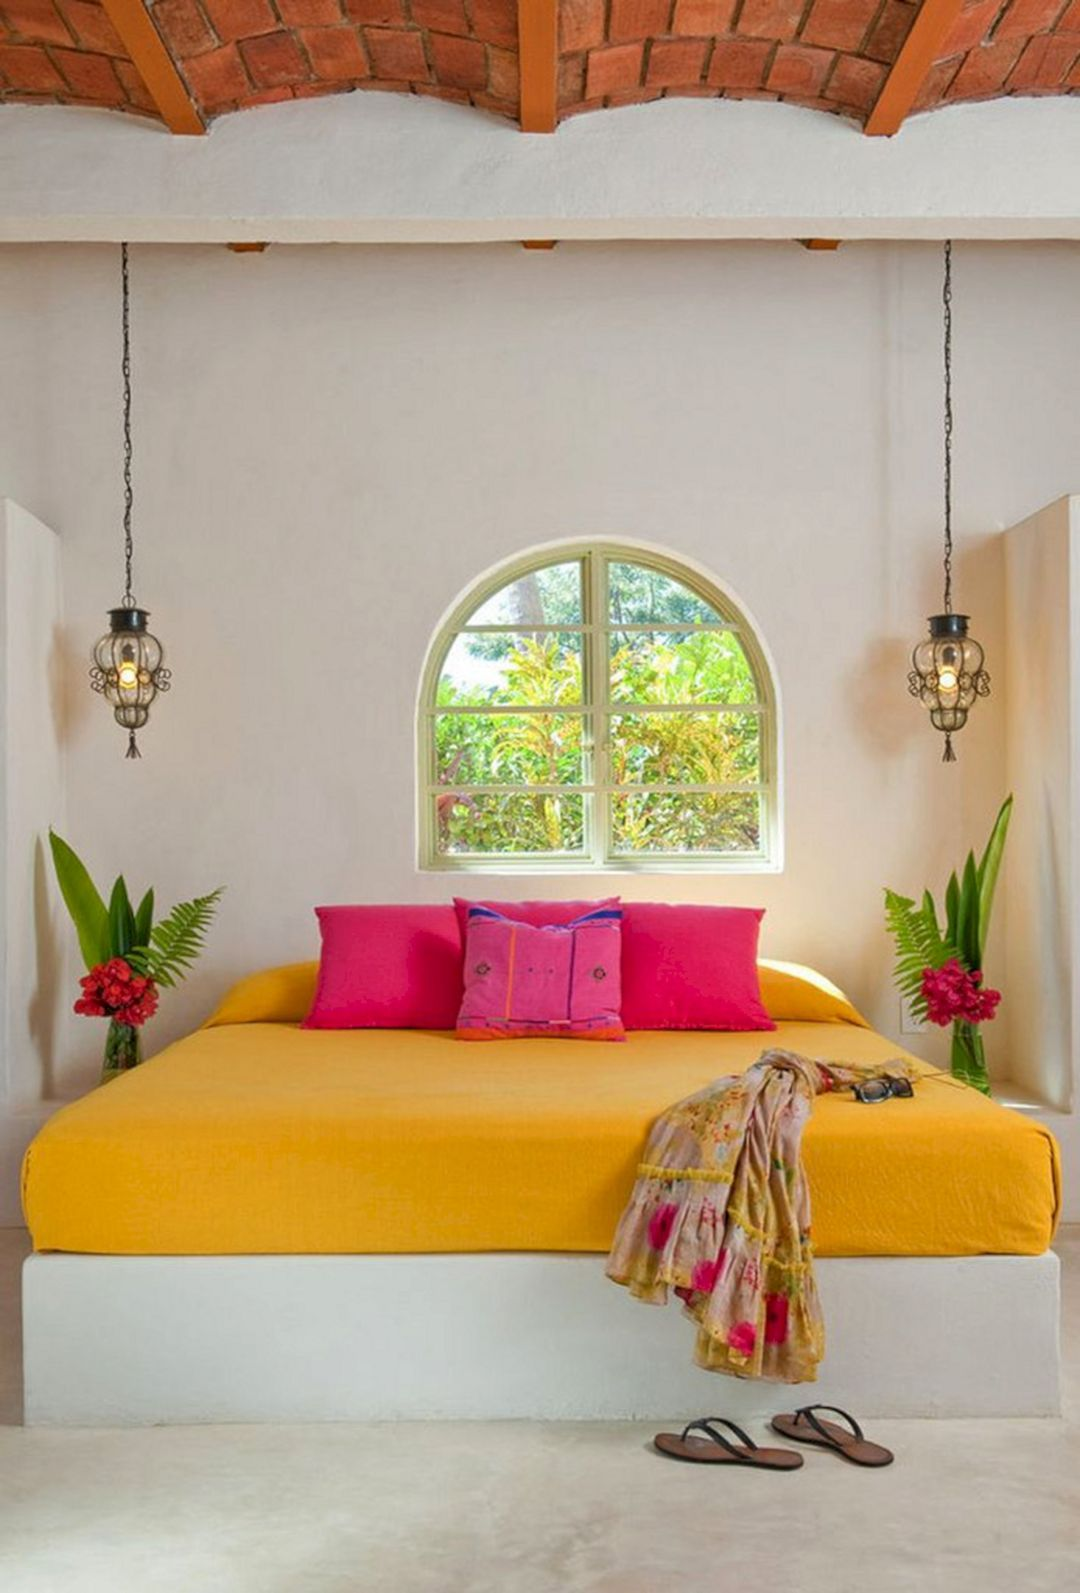 spanish style bedroom furniture. 52+ Best And Amazing Spanish Style Bedroom Furniture Design Ideas M